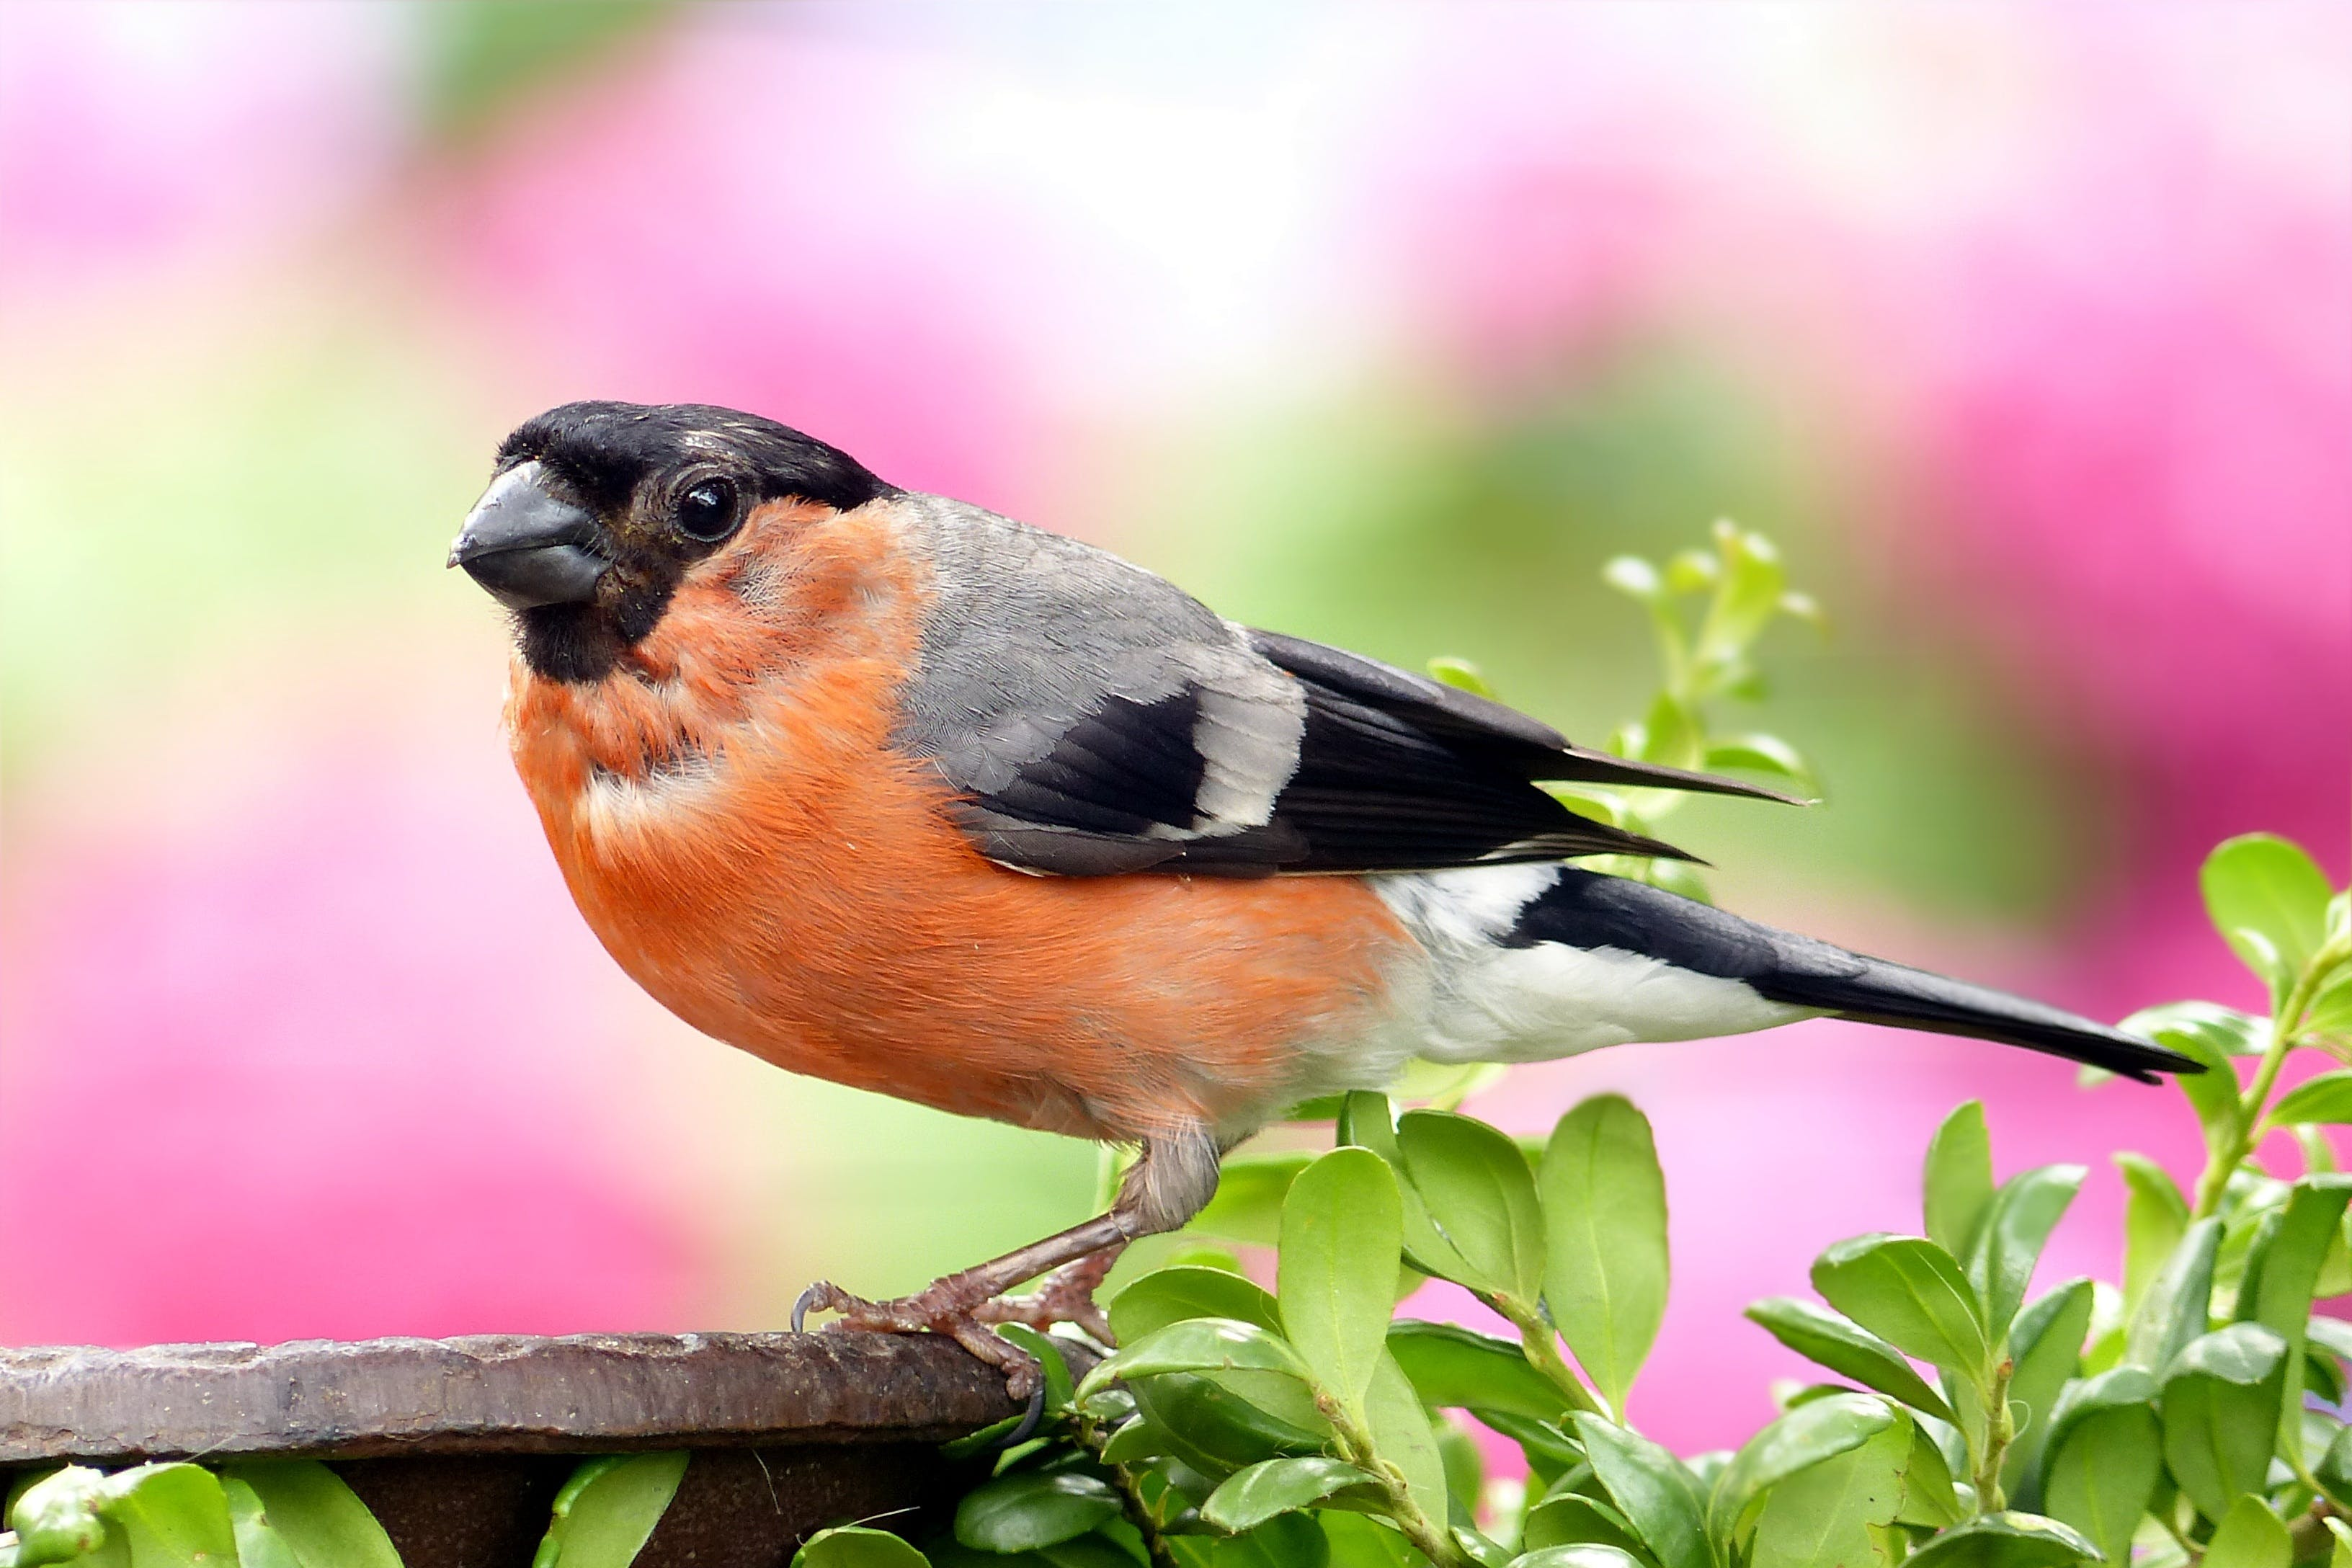 Orange and Grey Black Small Bick Bird